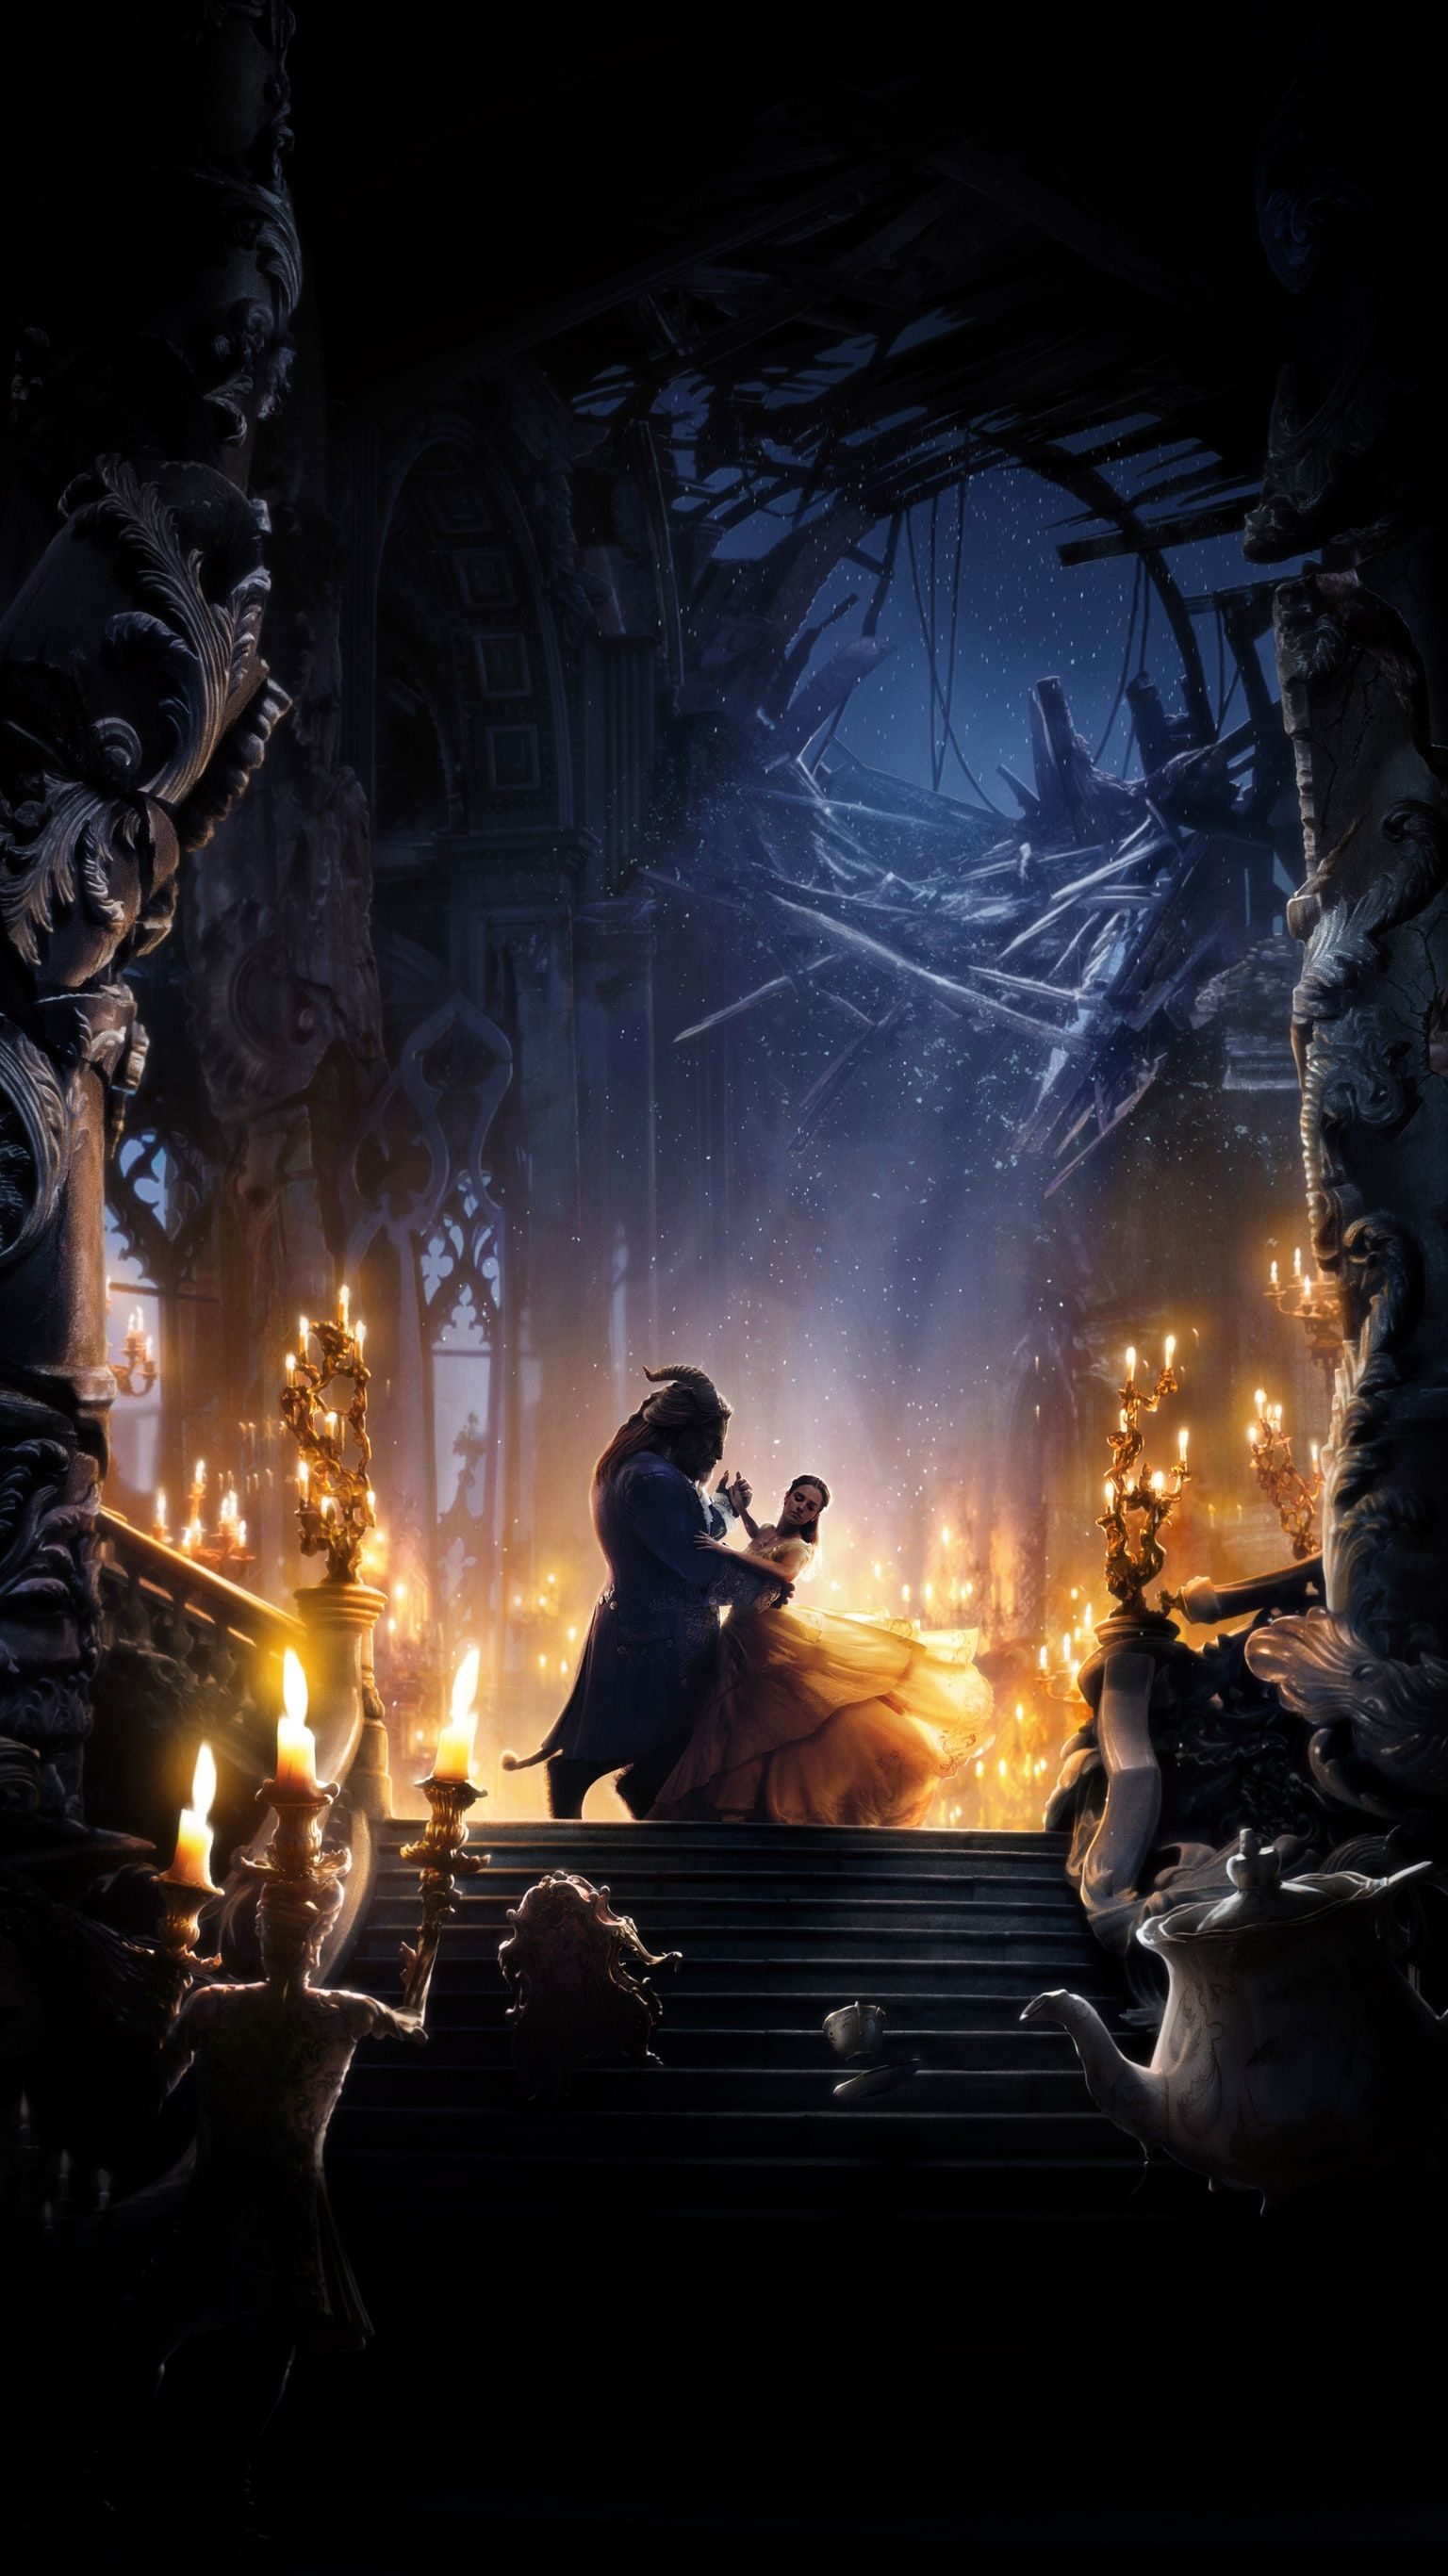 Beauty And The Beast 2017 Phone Wallpaper In 2019 Beast